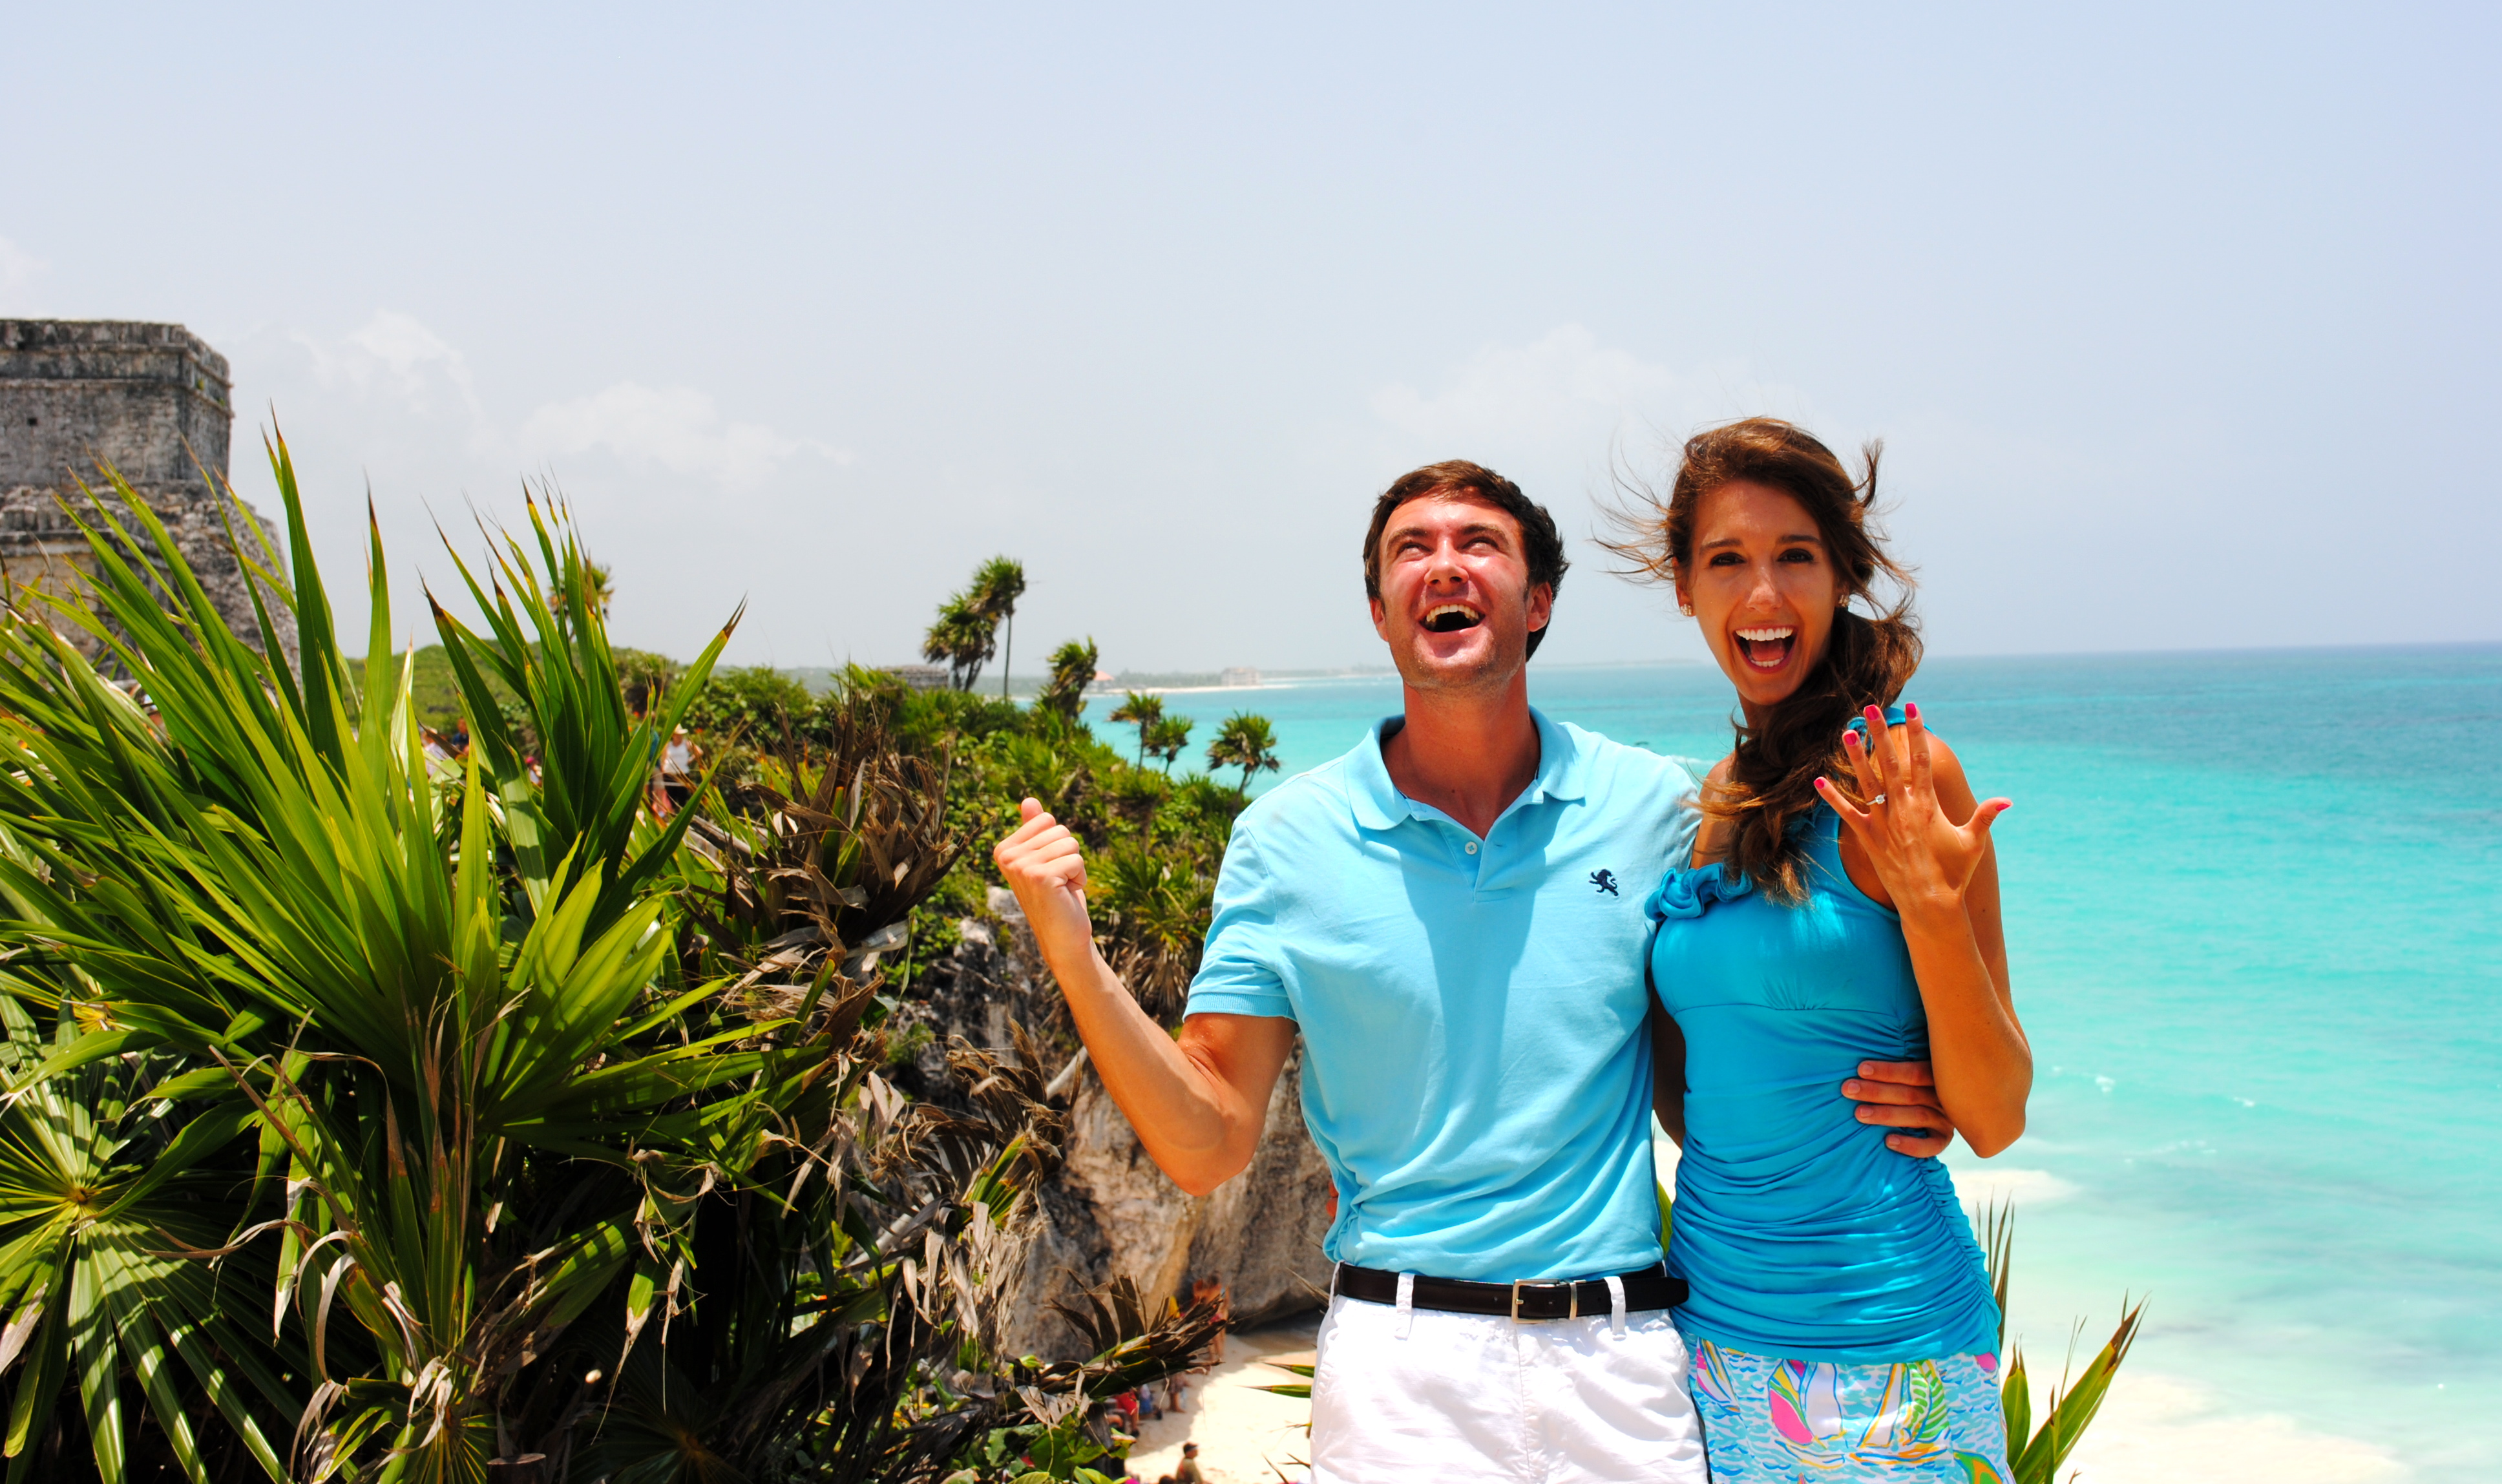 Image 8 of Lindsey and Mark | College Sweethearts